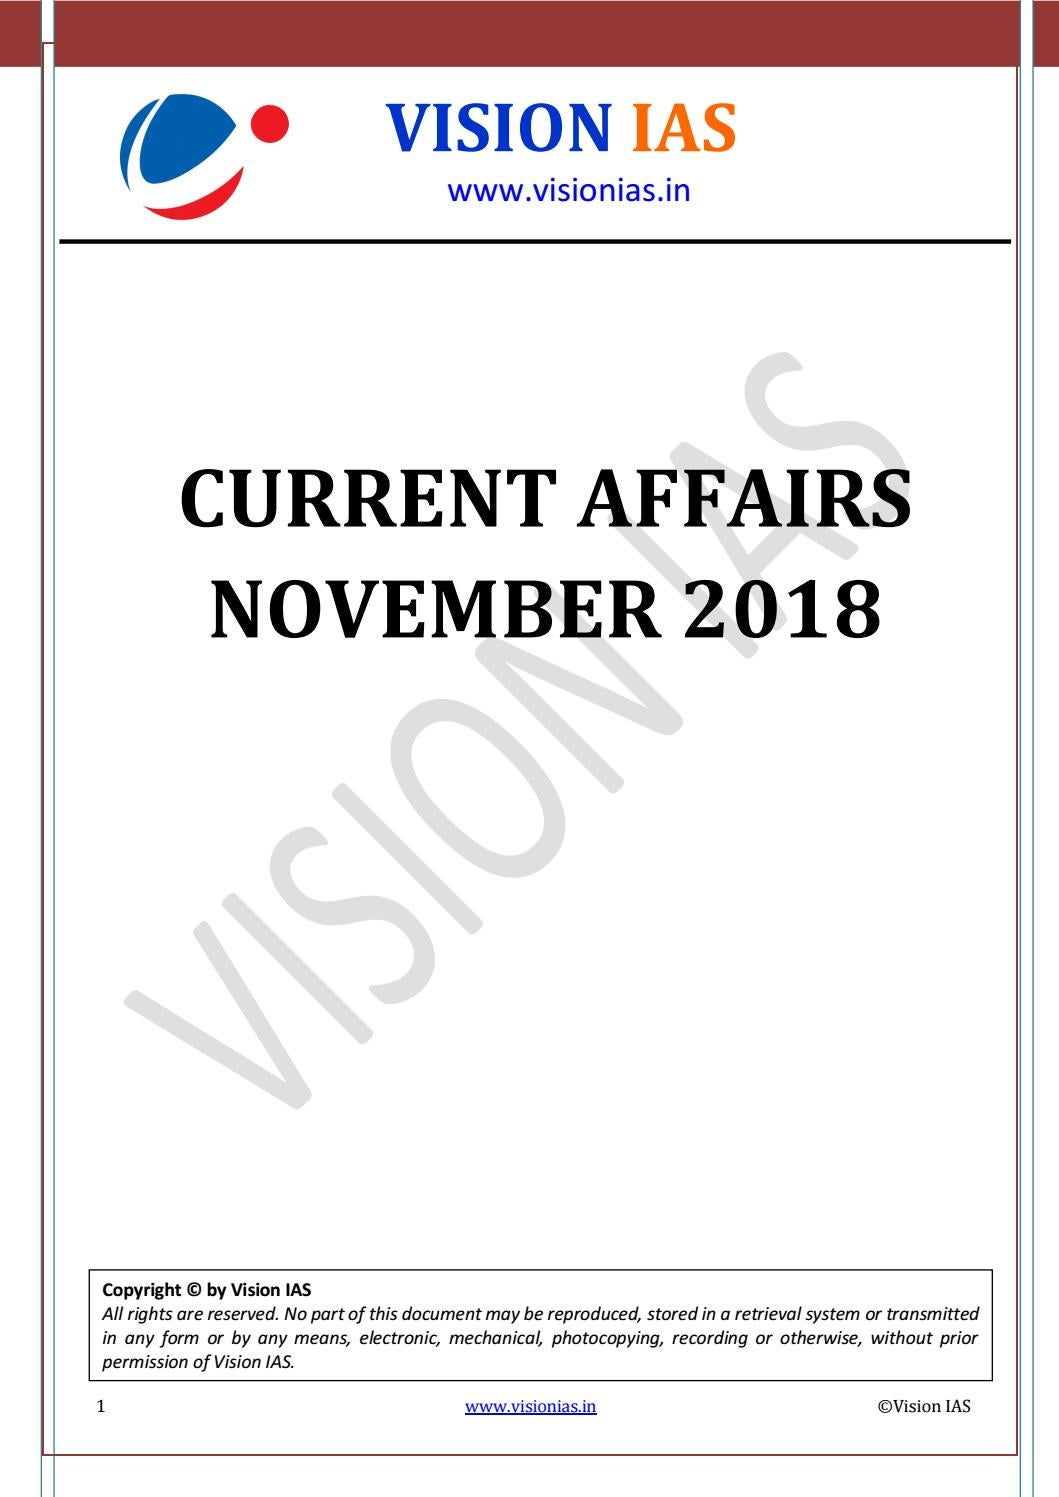 makeup artist jobs salary canada saubhaya makeup how long does it take to become an interior designer VisionIAS Current Affairs | Economic Survey analysis by visionpushpa - issuu